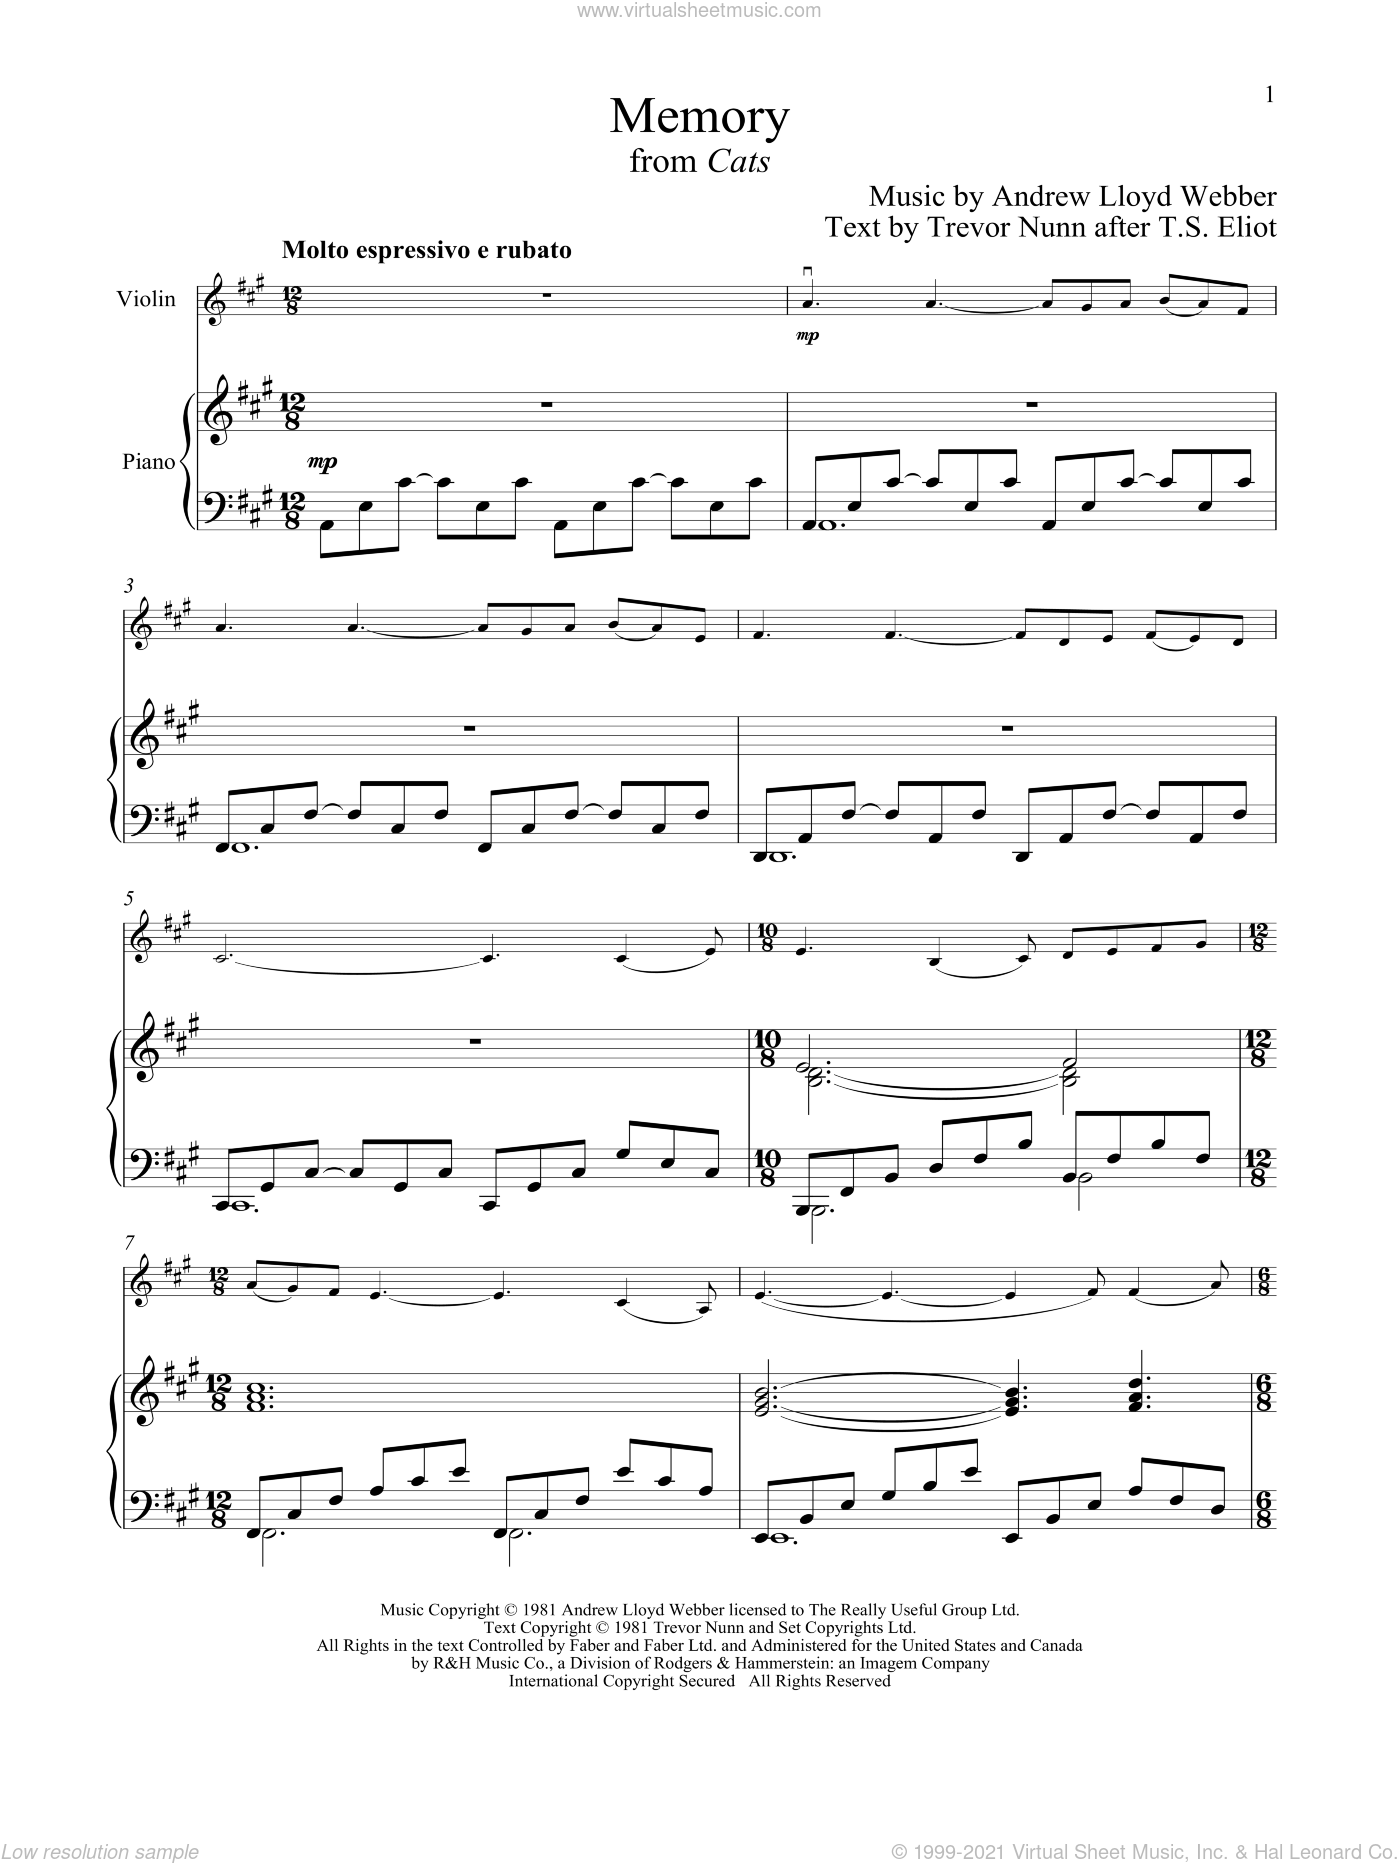 Memory (from Cats) sheet music for violin and piano by Andrew Lloyd Webber, intermediate skill level